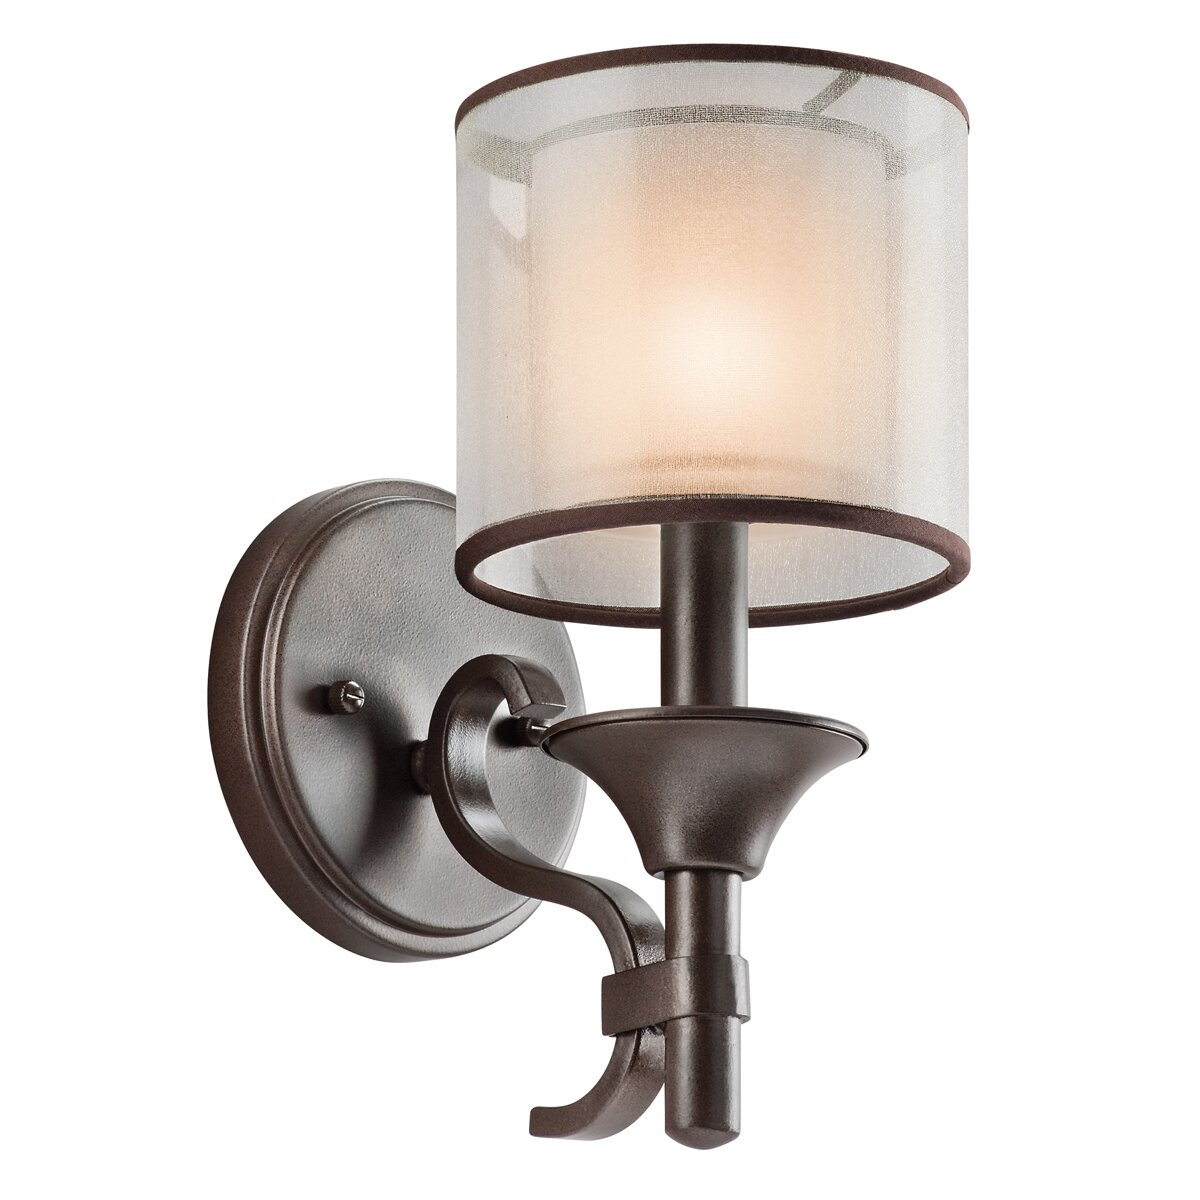 Kichler Bathroom Wall Sconces : Kichler Family Spaces 1 Light Wall Sconce & Reviews Wayfair